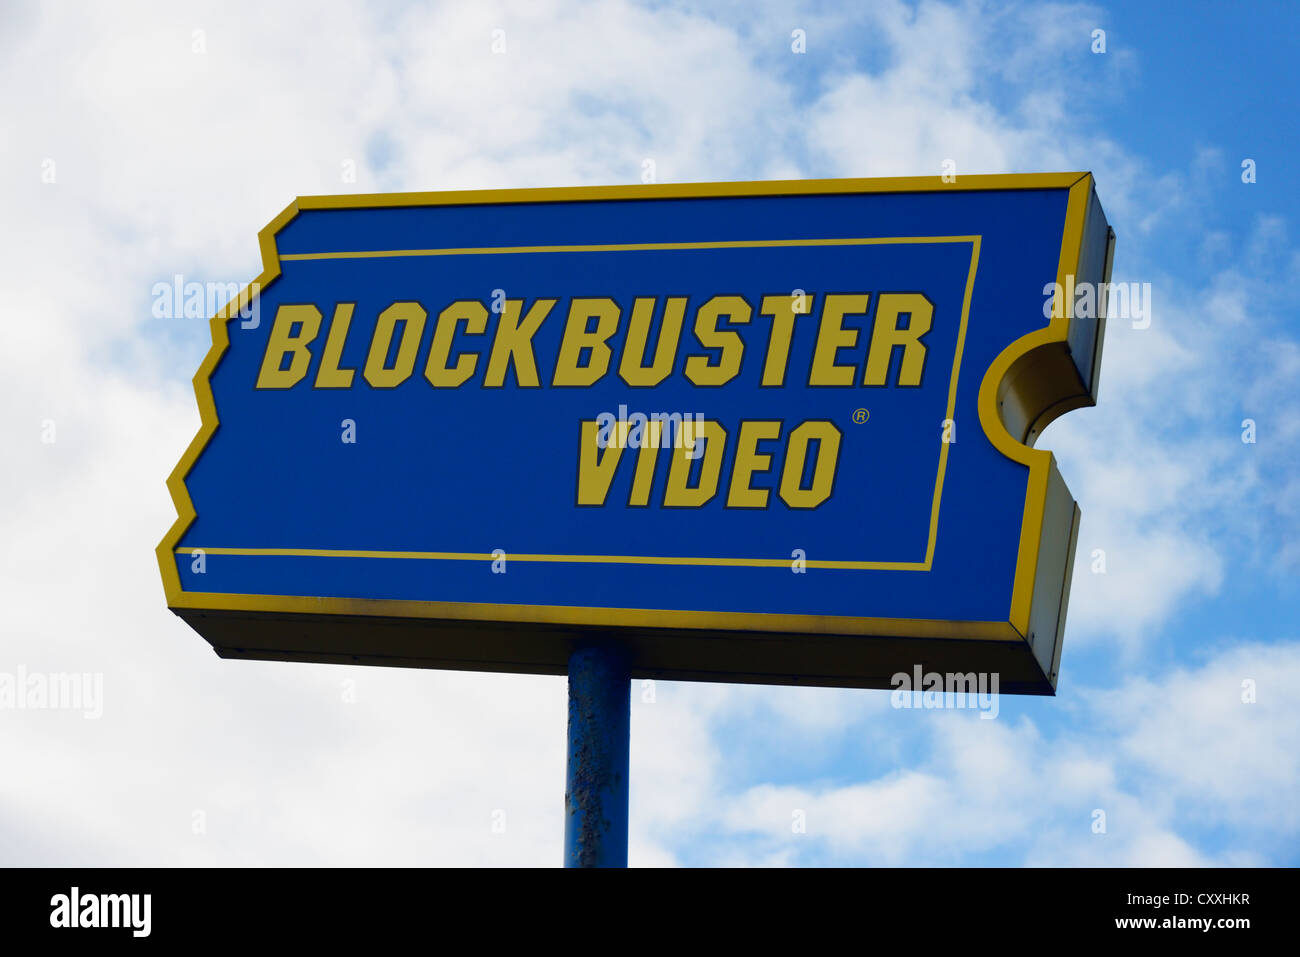 blockbuster-video-sign-central-drive-morecambe-lancashire-england-CXXHKR.jpg